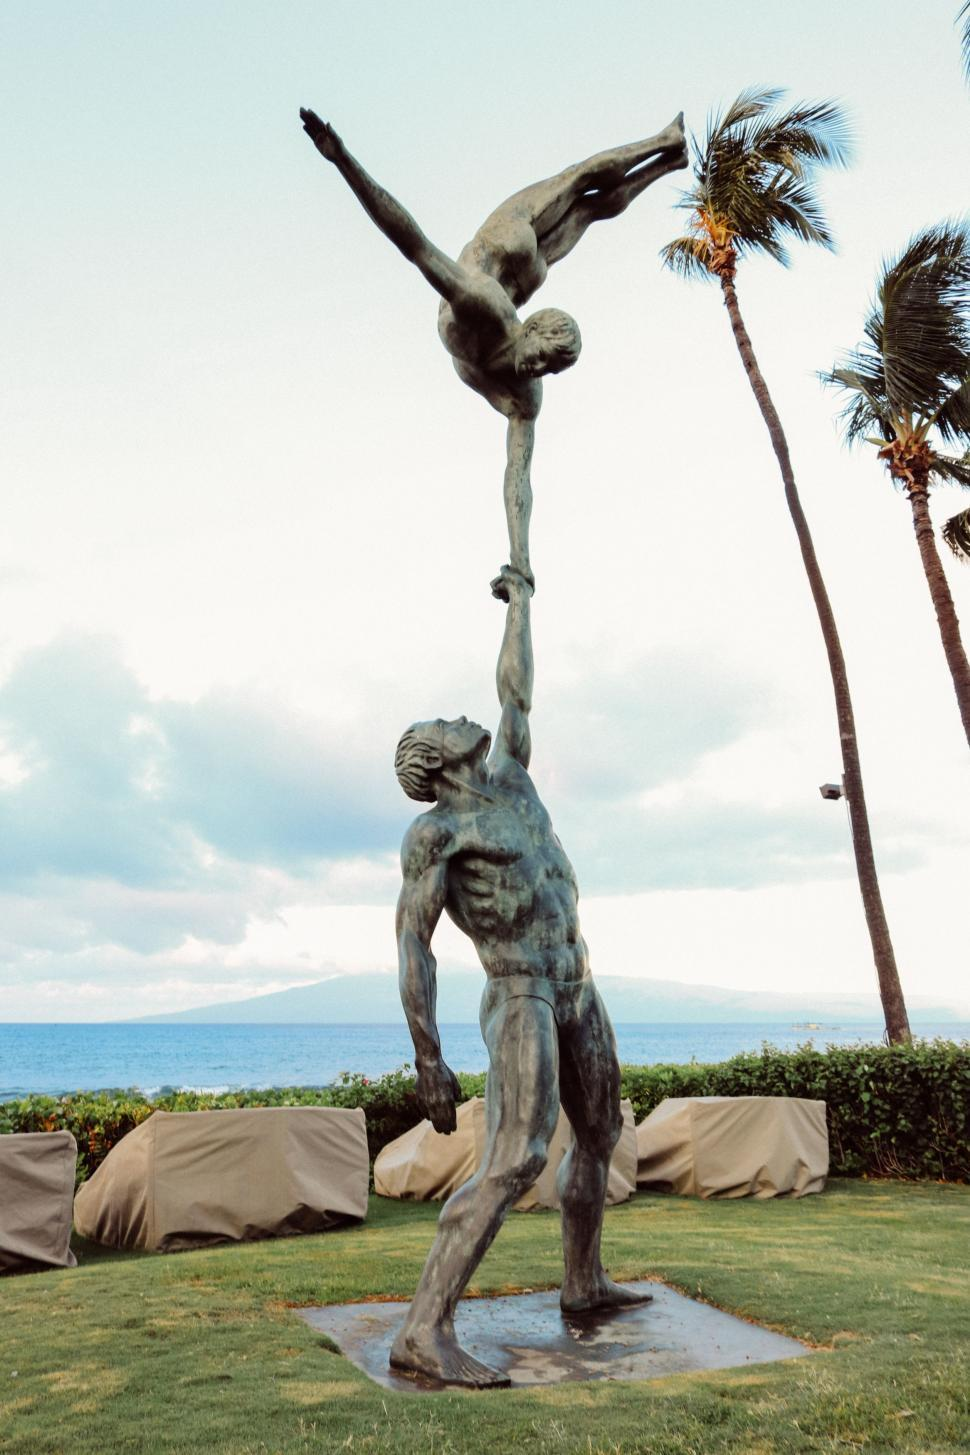 Download Free Stock Photo of The Acrobats statue with ocean and sky in the background